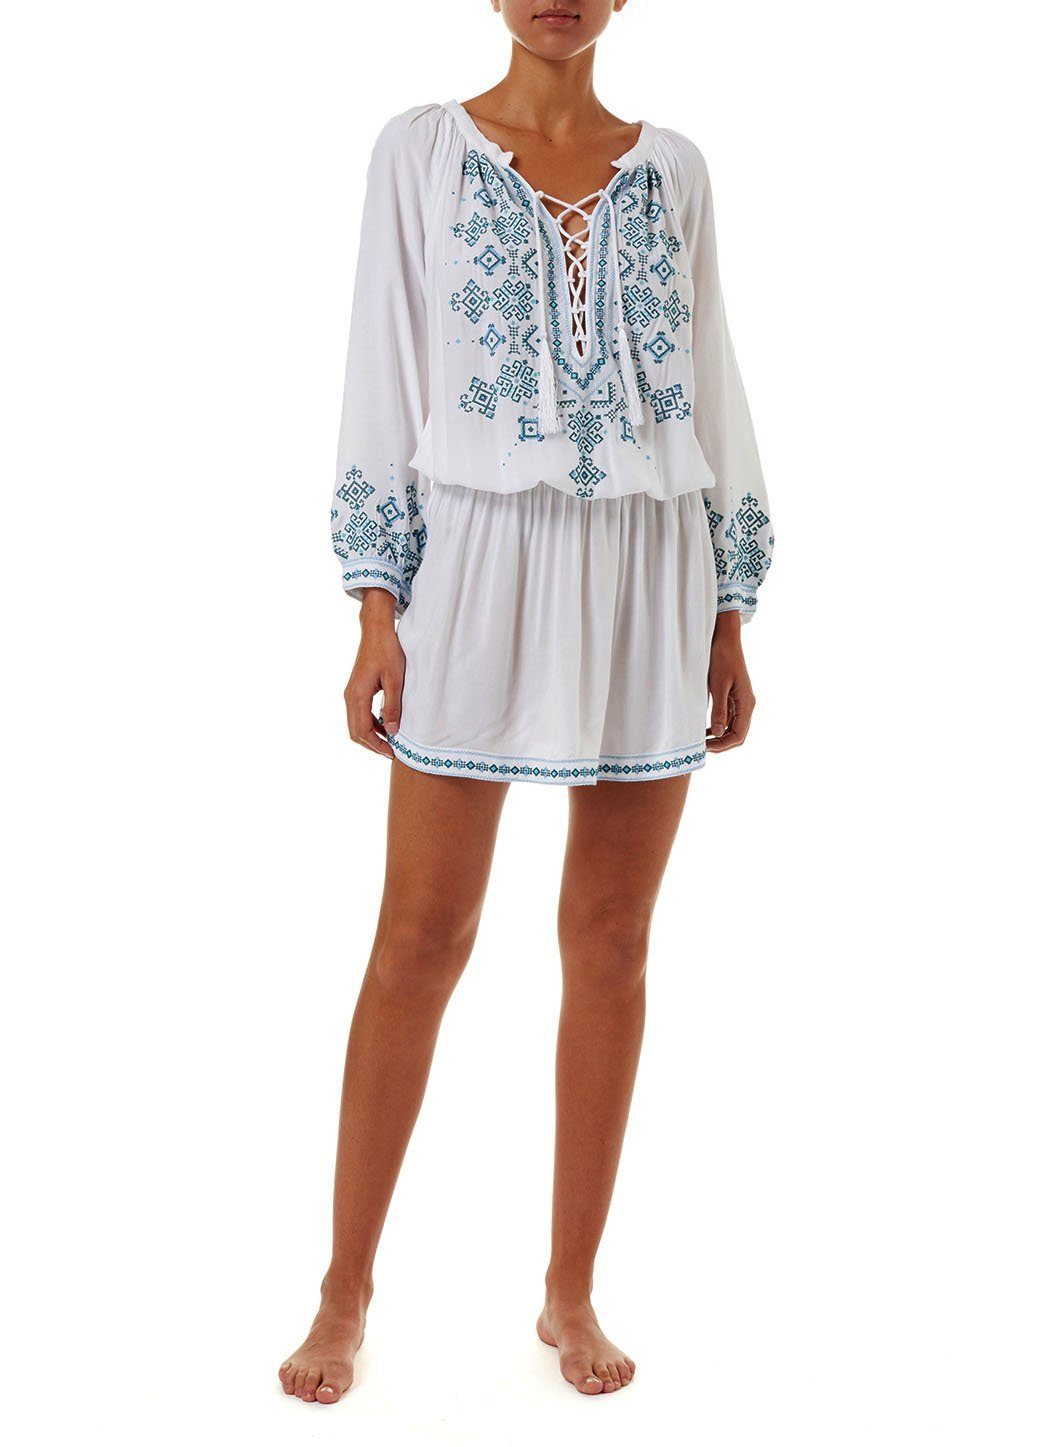 nadja white green embroidered 34sleeve short dress 2019 F